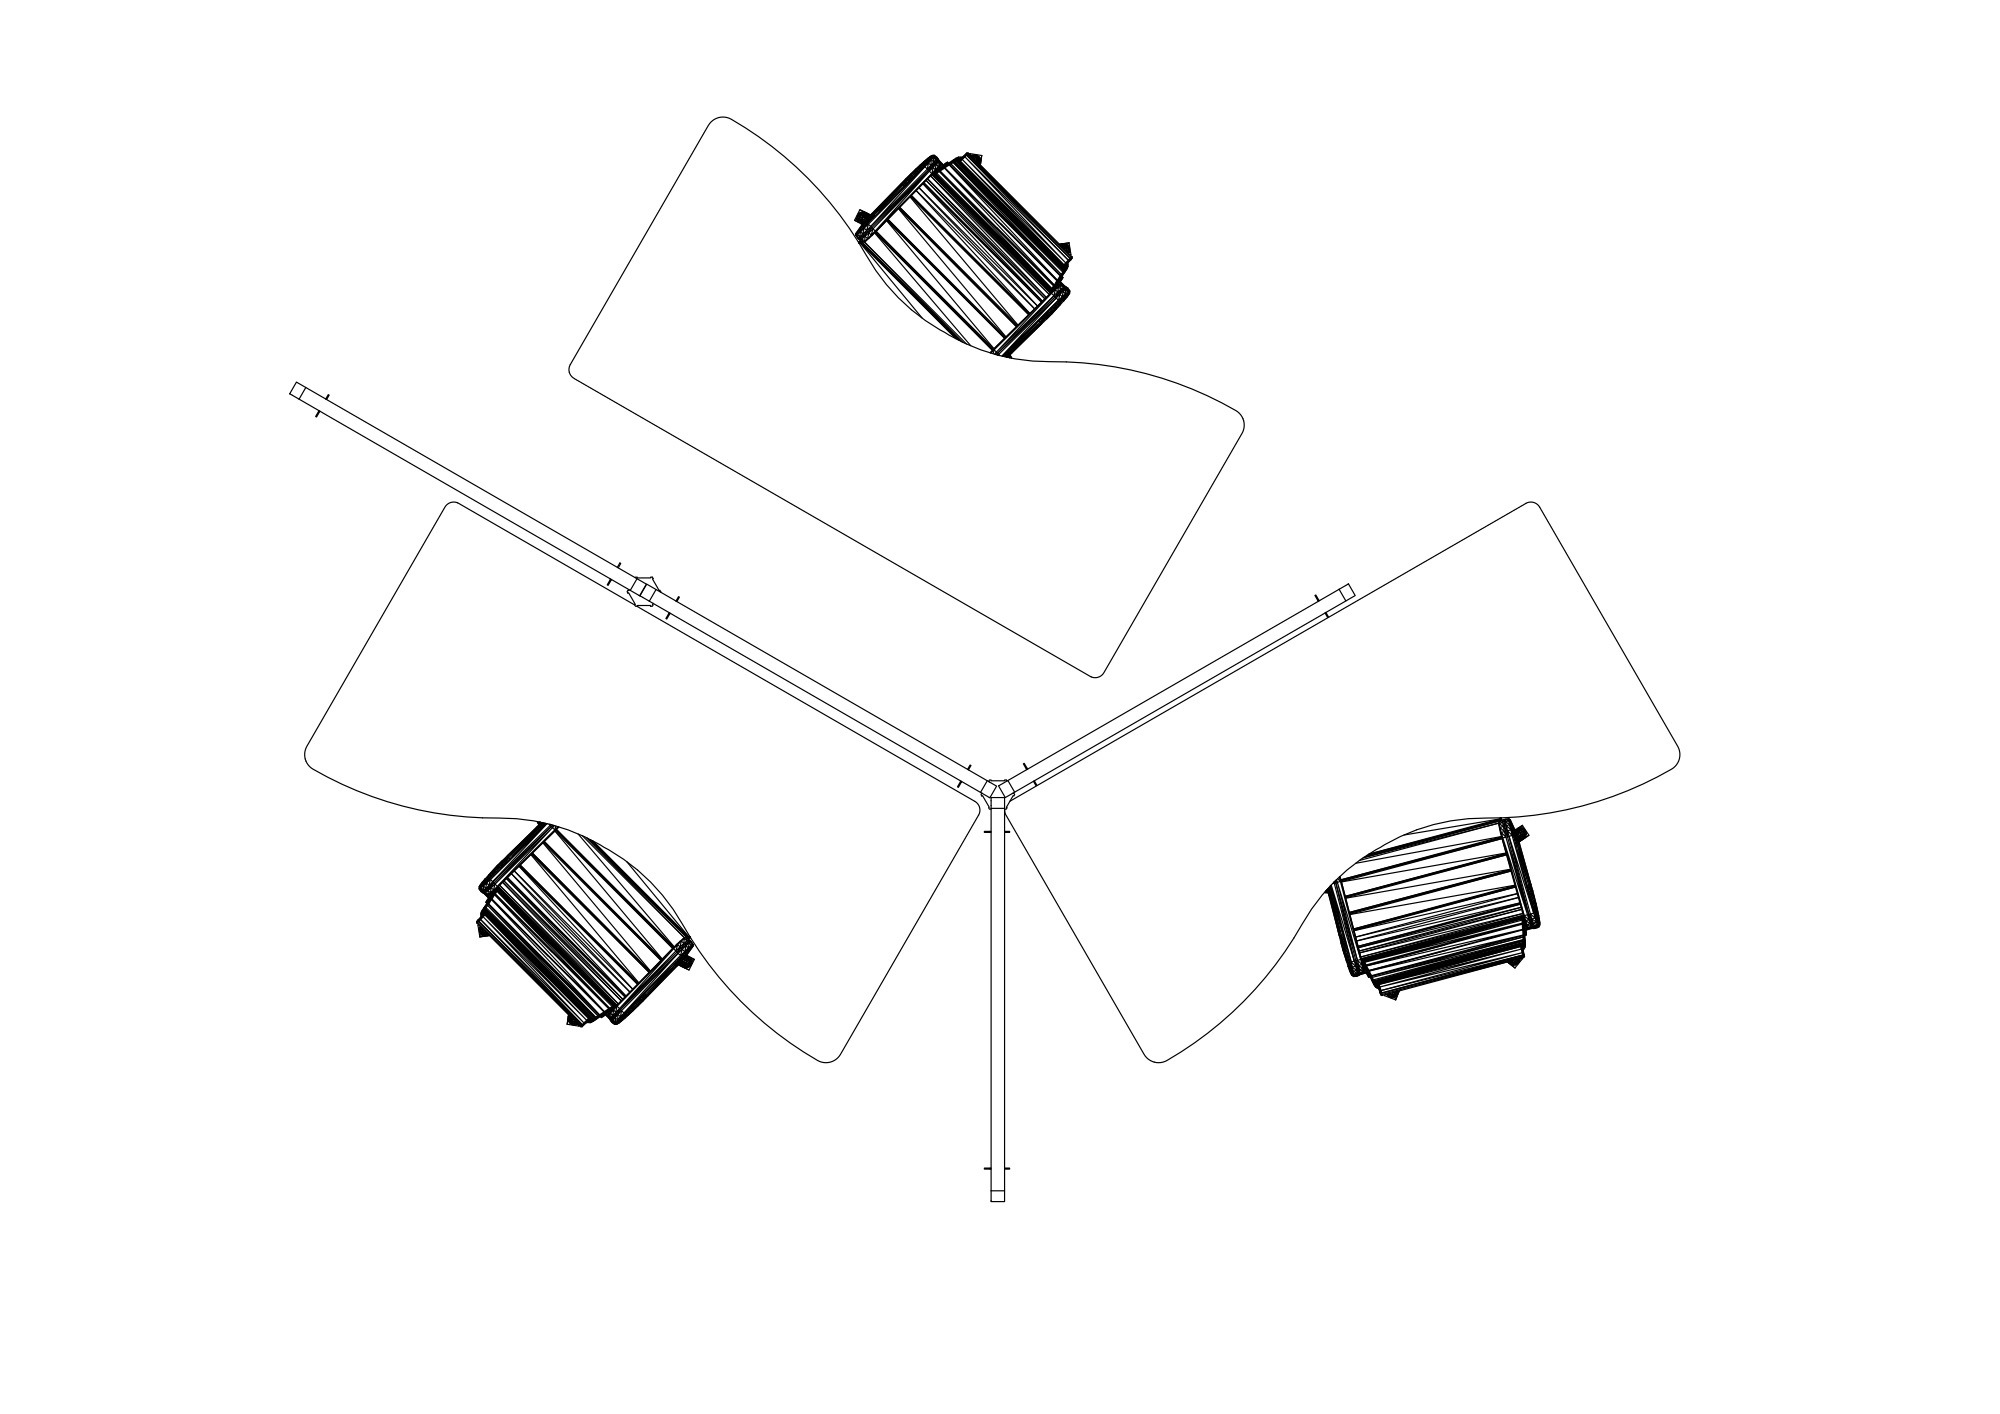 Drawing of acoustic back-to-work screens surrounding three office spaces. Made by Intelligent Space.